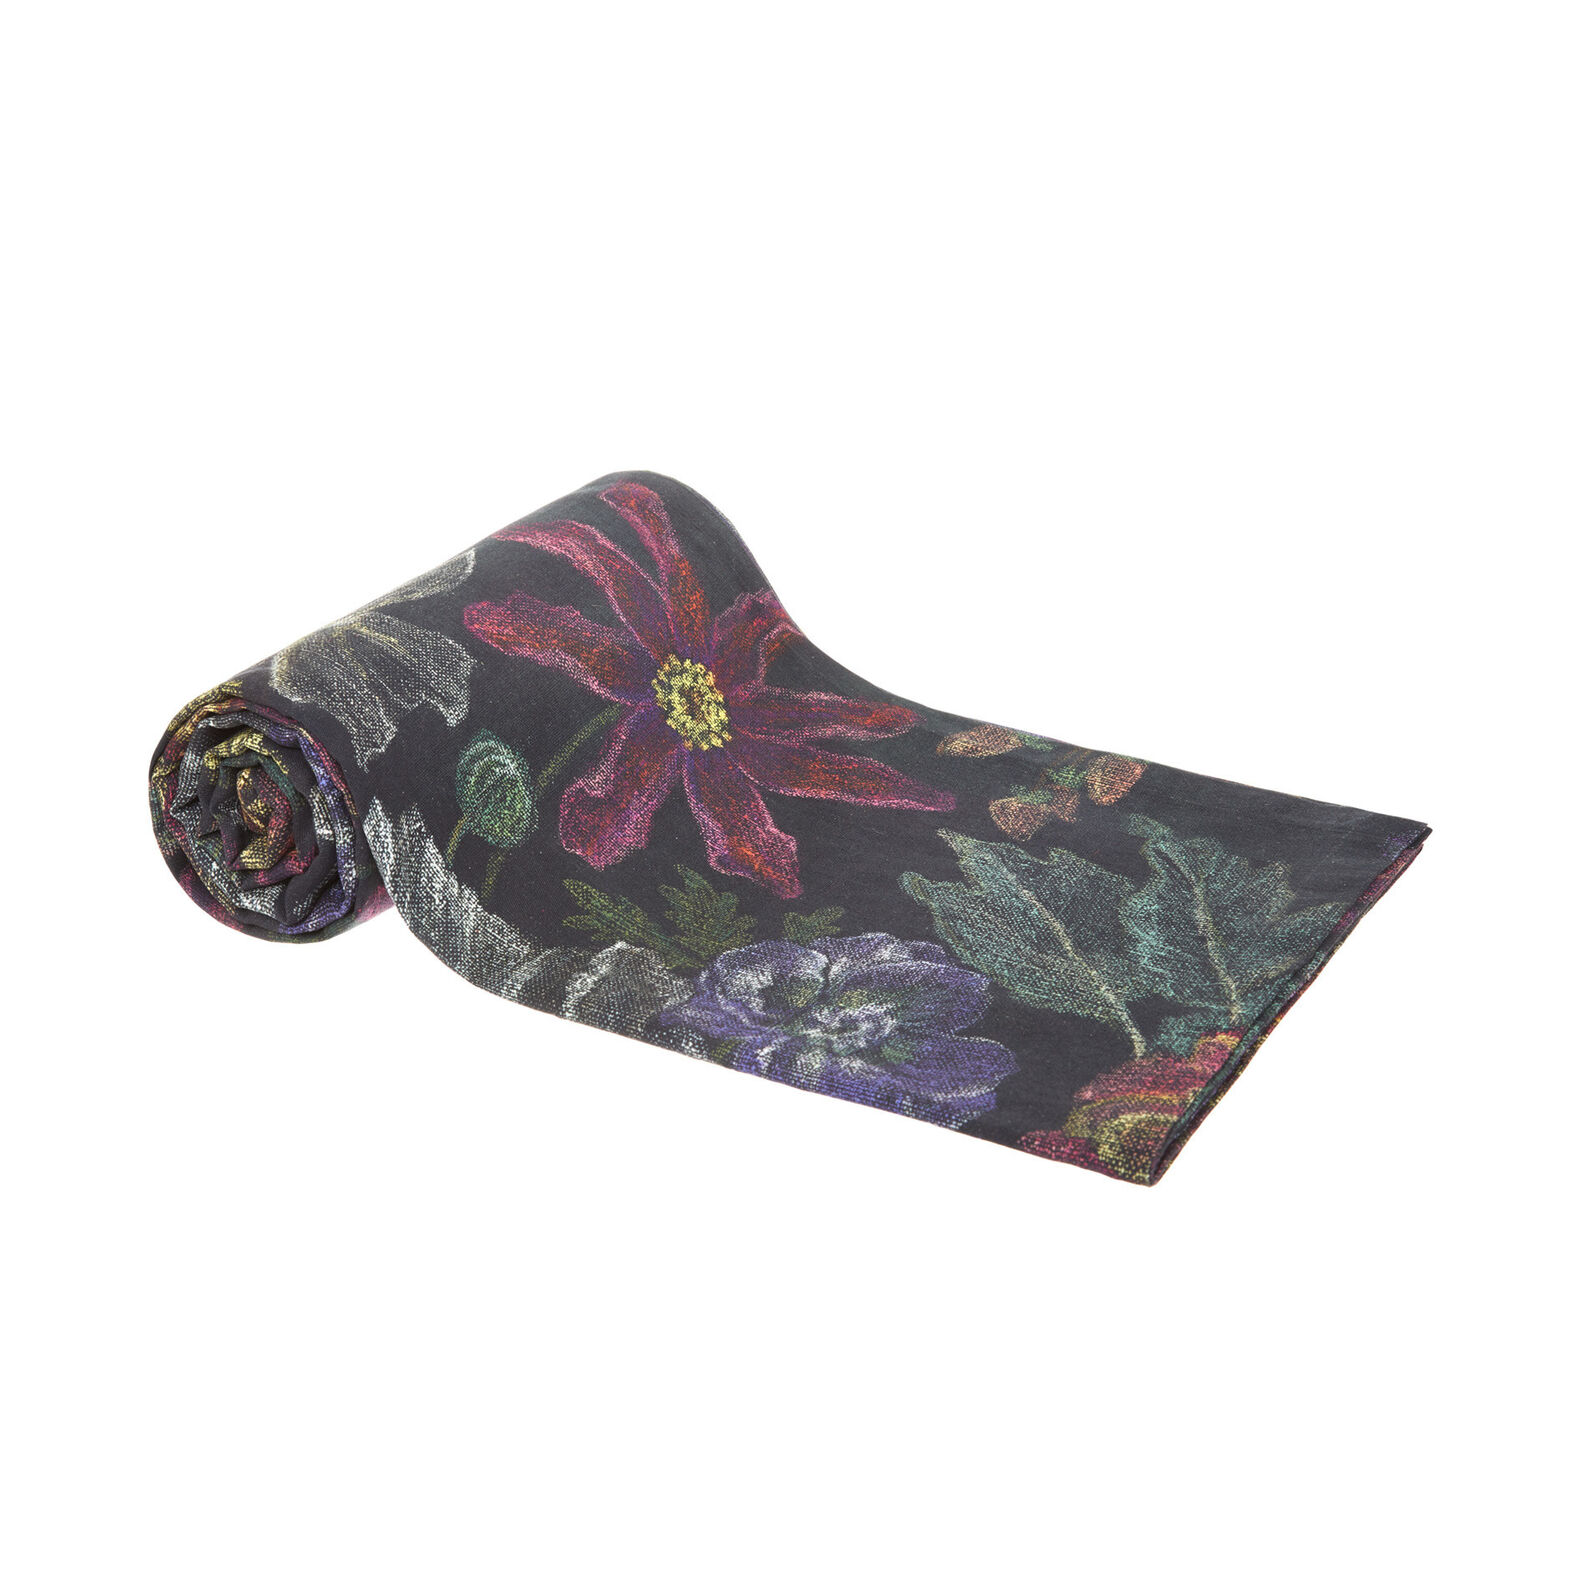 100% cotton throw with floral print